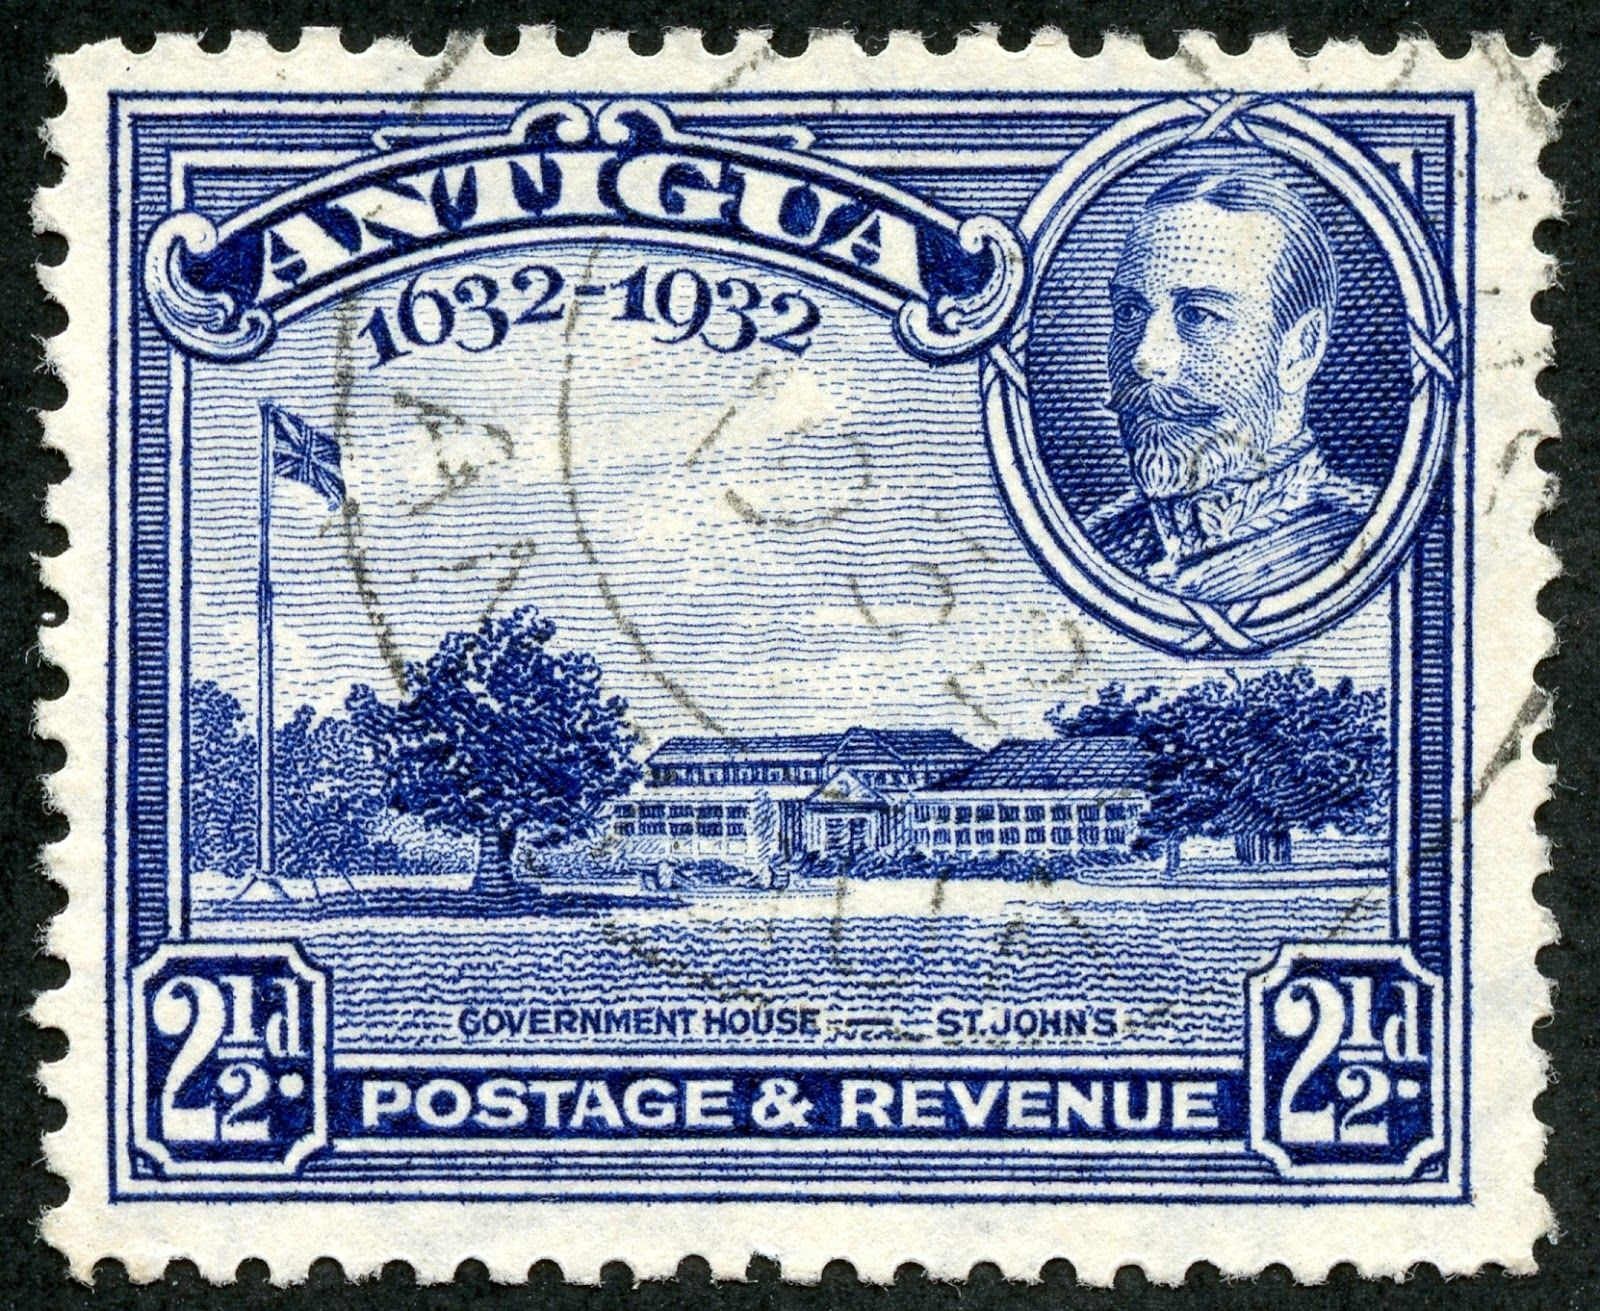 Antigua 1932 Scott 71 2 189 D Ultramarine Quot Government House St John S Quot Antigua Stamp Collecting